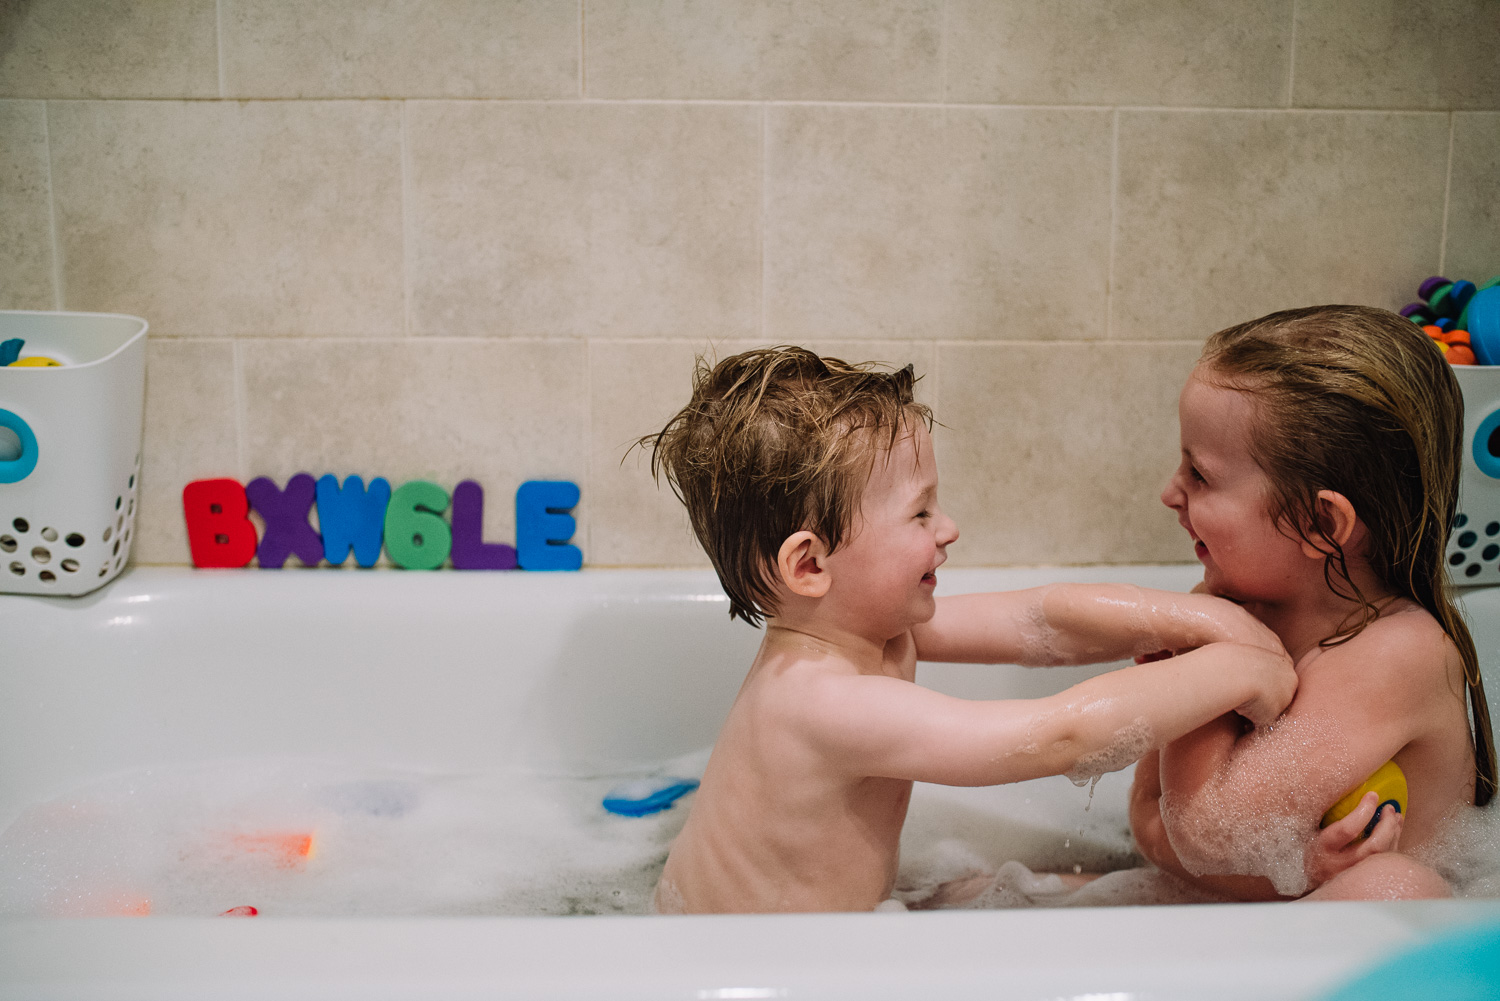 A brother and sister playing around in the bath.